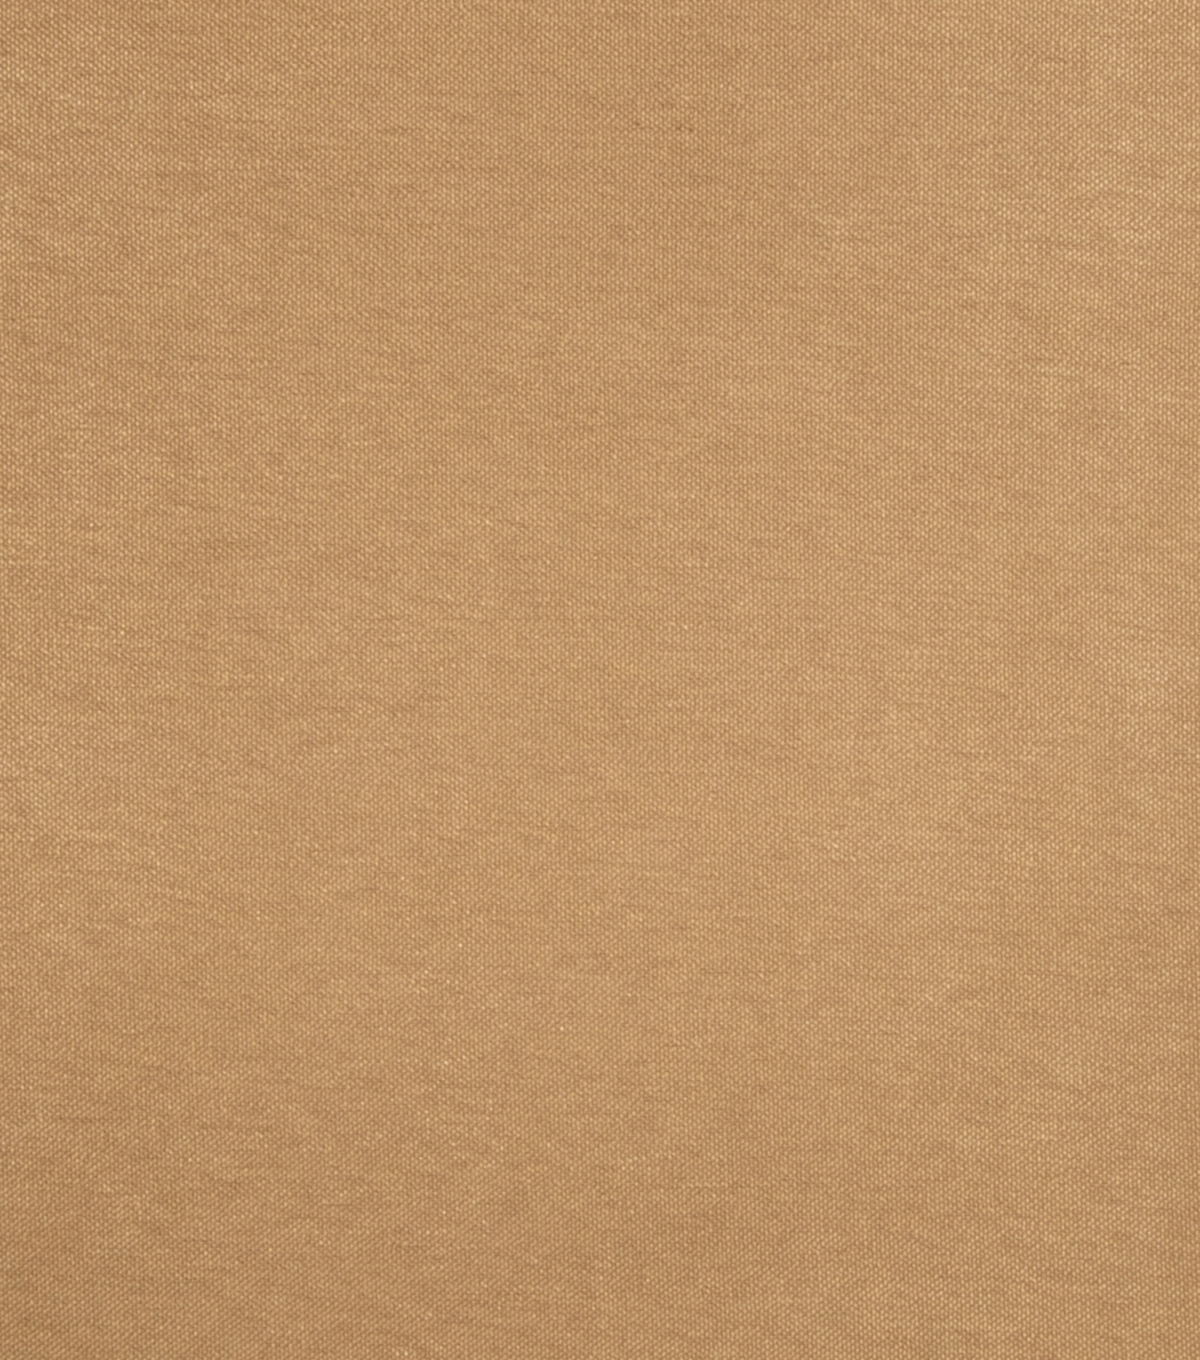 Home Decor 8\u0022x8\u0022 Fabric Swatch-Jaclyn Smith Cobblestone Boucle Chestnut